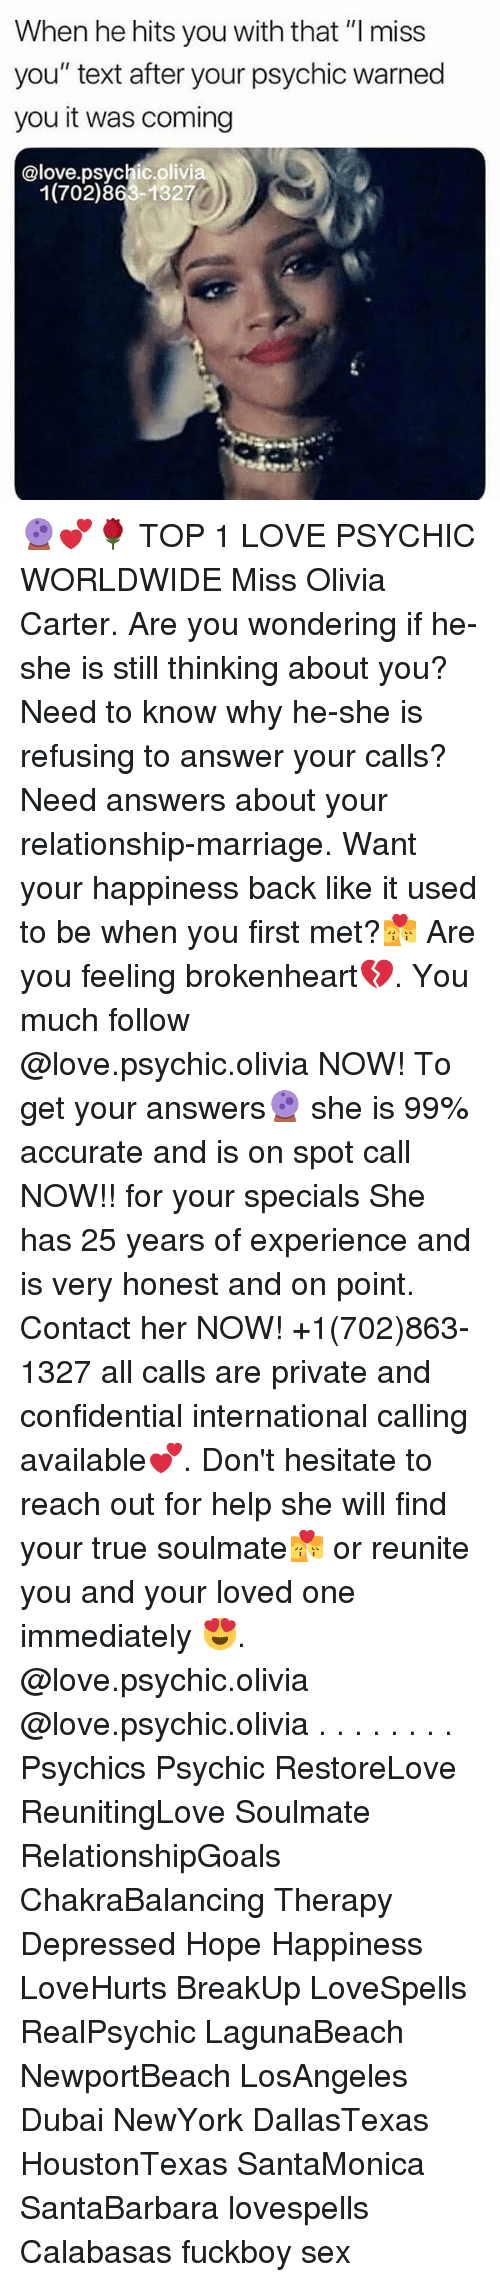 """brokenheart: When he hits you with that """"l miss  you"""" text after your psychic warned  you it was coming  @love.psychic.olivia  1(702)863-1327 🔮💕🌹 TOP 1 LOVE PSYCHIC WORLDWIDE Miss Olivia Carter. Are you wondering if he-she is still thinking about you? Need to know why he-she is refusing to answer your calls? Need answers about your relationship-marriage. Want your happiness back like it used to be when you first met?💏 Are you feeling brokenheart💔. You much follow @love.psychic.olivia NOW! To get your answers🔮 she is 99% accurate and is on spot call NOW!! for your specials She has 25 years of experience and is very honest and on point. Contact her NOW! +1(702)863-1327 all calls are private and confidential international calling available💕. Don't hesitate to reach out for help she will find your true soulmate💏 or reunite you and your loved one immediately 😍. @love.psychic.olivia @love.psychic.olivia . . . . . . . . Psychics Psychic RestoreLove ReunitingLove Soulmate RelationshipGoals ChakraBalancing Therapy Depressed Hope Happiness LoveHurts BreakUp LoveSpells RealPsychic LagunaBeach NewportBeach LosAngeles Dubai NewYork DallasTexas HoustonTexas SantaMonica SantaBarbara lovespells Calabasas fuckboy sex"""